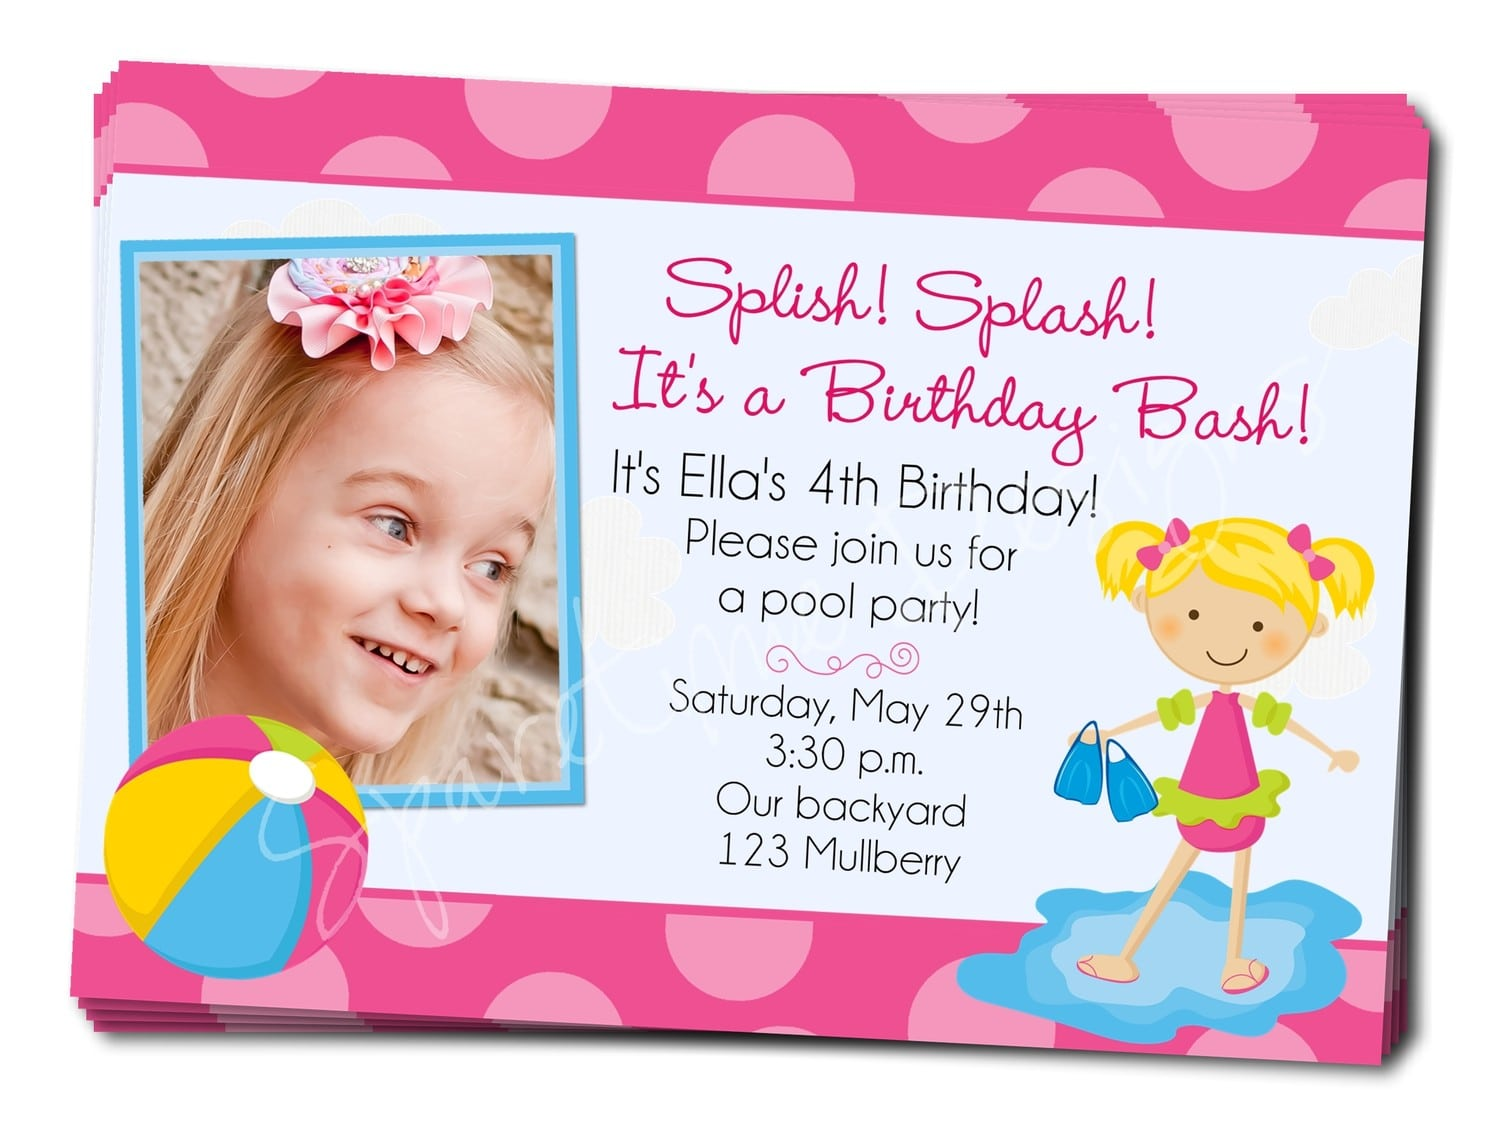 10 year old birthday party invitation wording mickey mouse 3 year old birthday party invitation wording template 2nd birthday pool party invitation wording birthday party filmwisefo Gallery